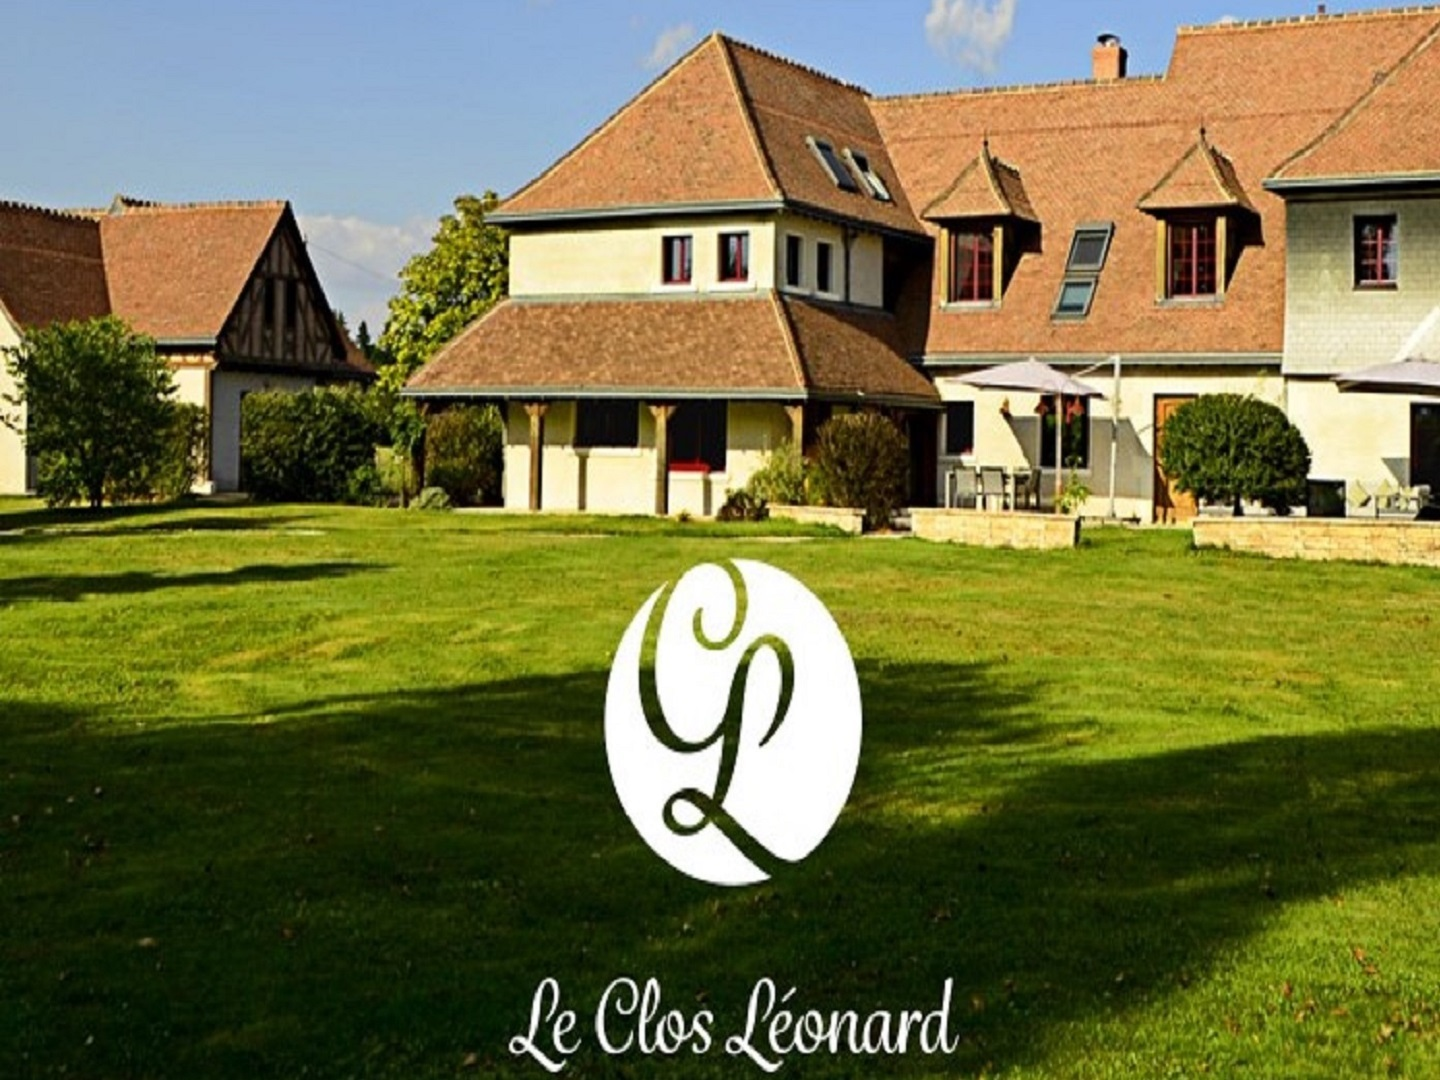 A large lawn in front of a house at Le clos Leonard.